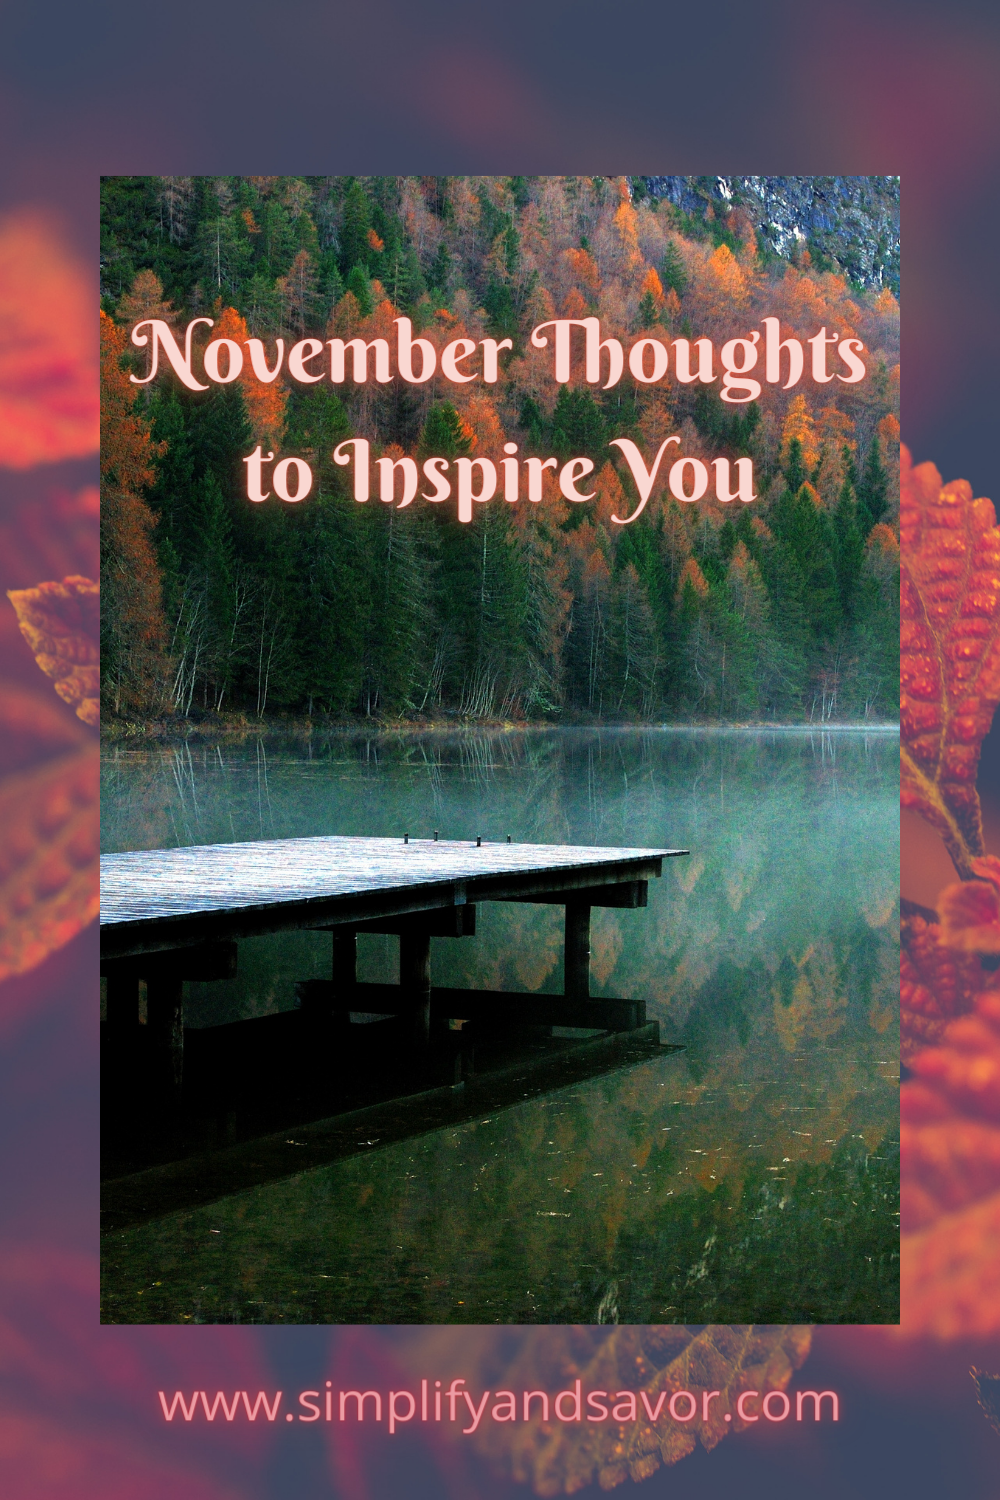 Thanksgiving is rounding the corner, and what better quotes to use than those that honor the soul of Thanksgiving. The November Thoughts to Inspire focuses on the reasons we should be thankful this season. They inspire us to acknowledge how truly blessed we are. Sometimes it is harder to see that, especially if there is a recent loss of a loved one, or other hardship, but even if those events have affected you, there are still many other reasons to be grateful.